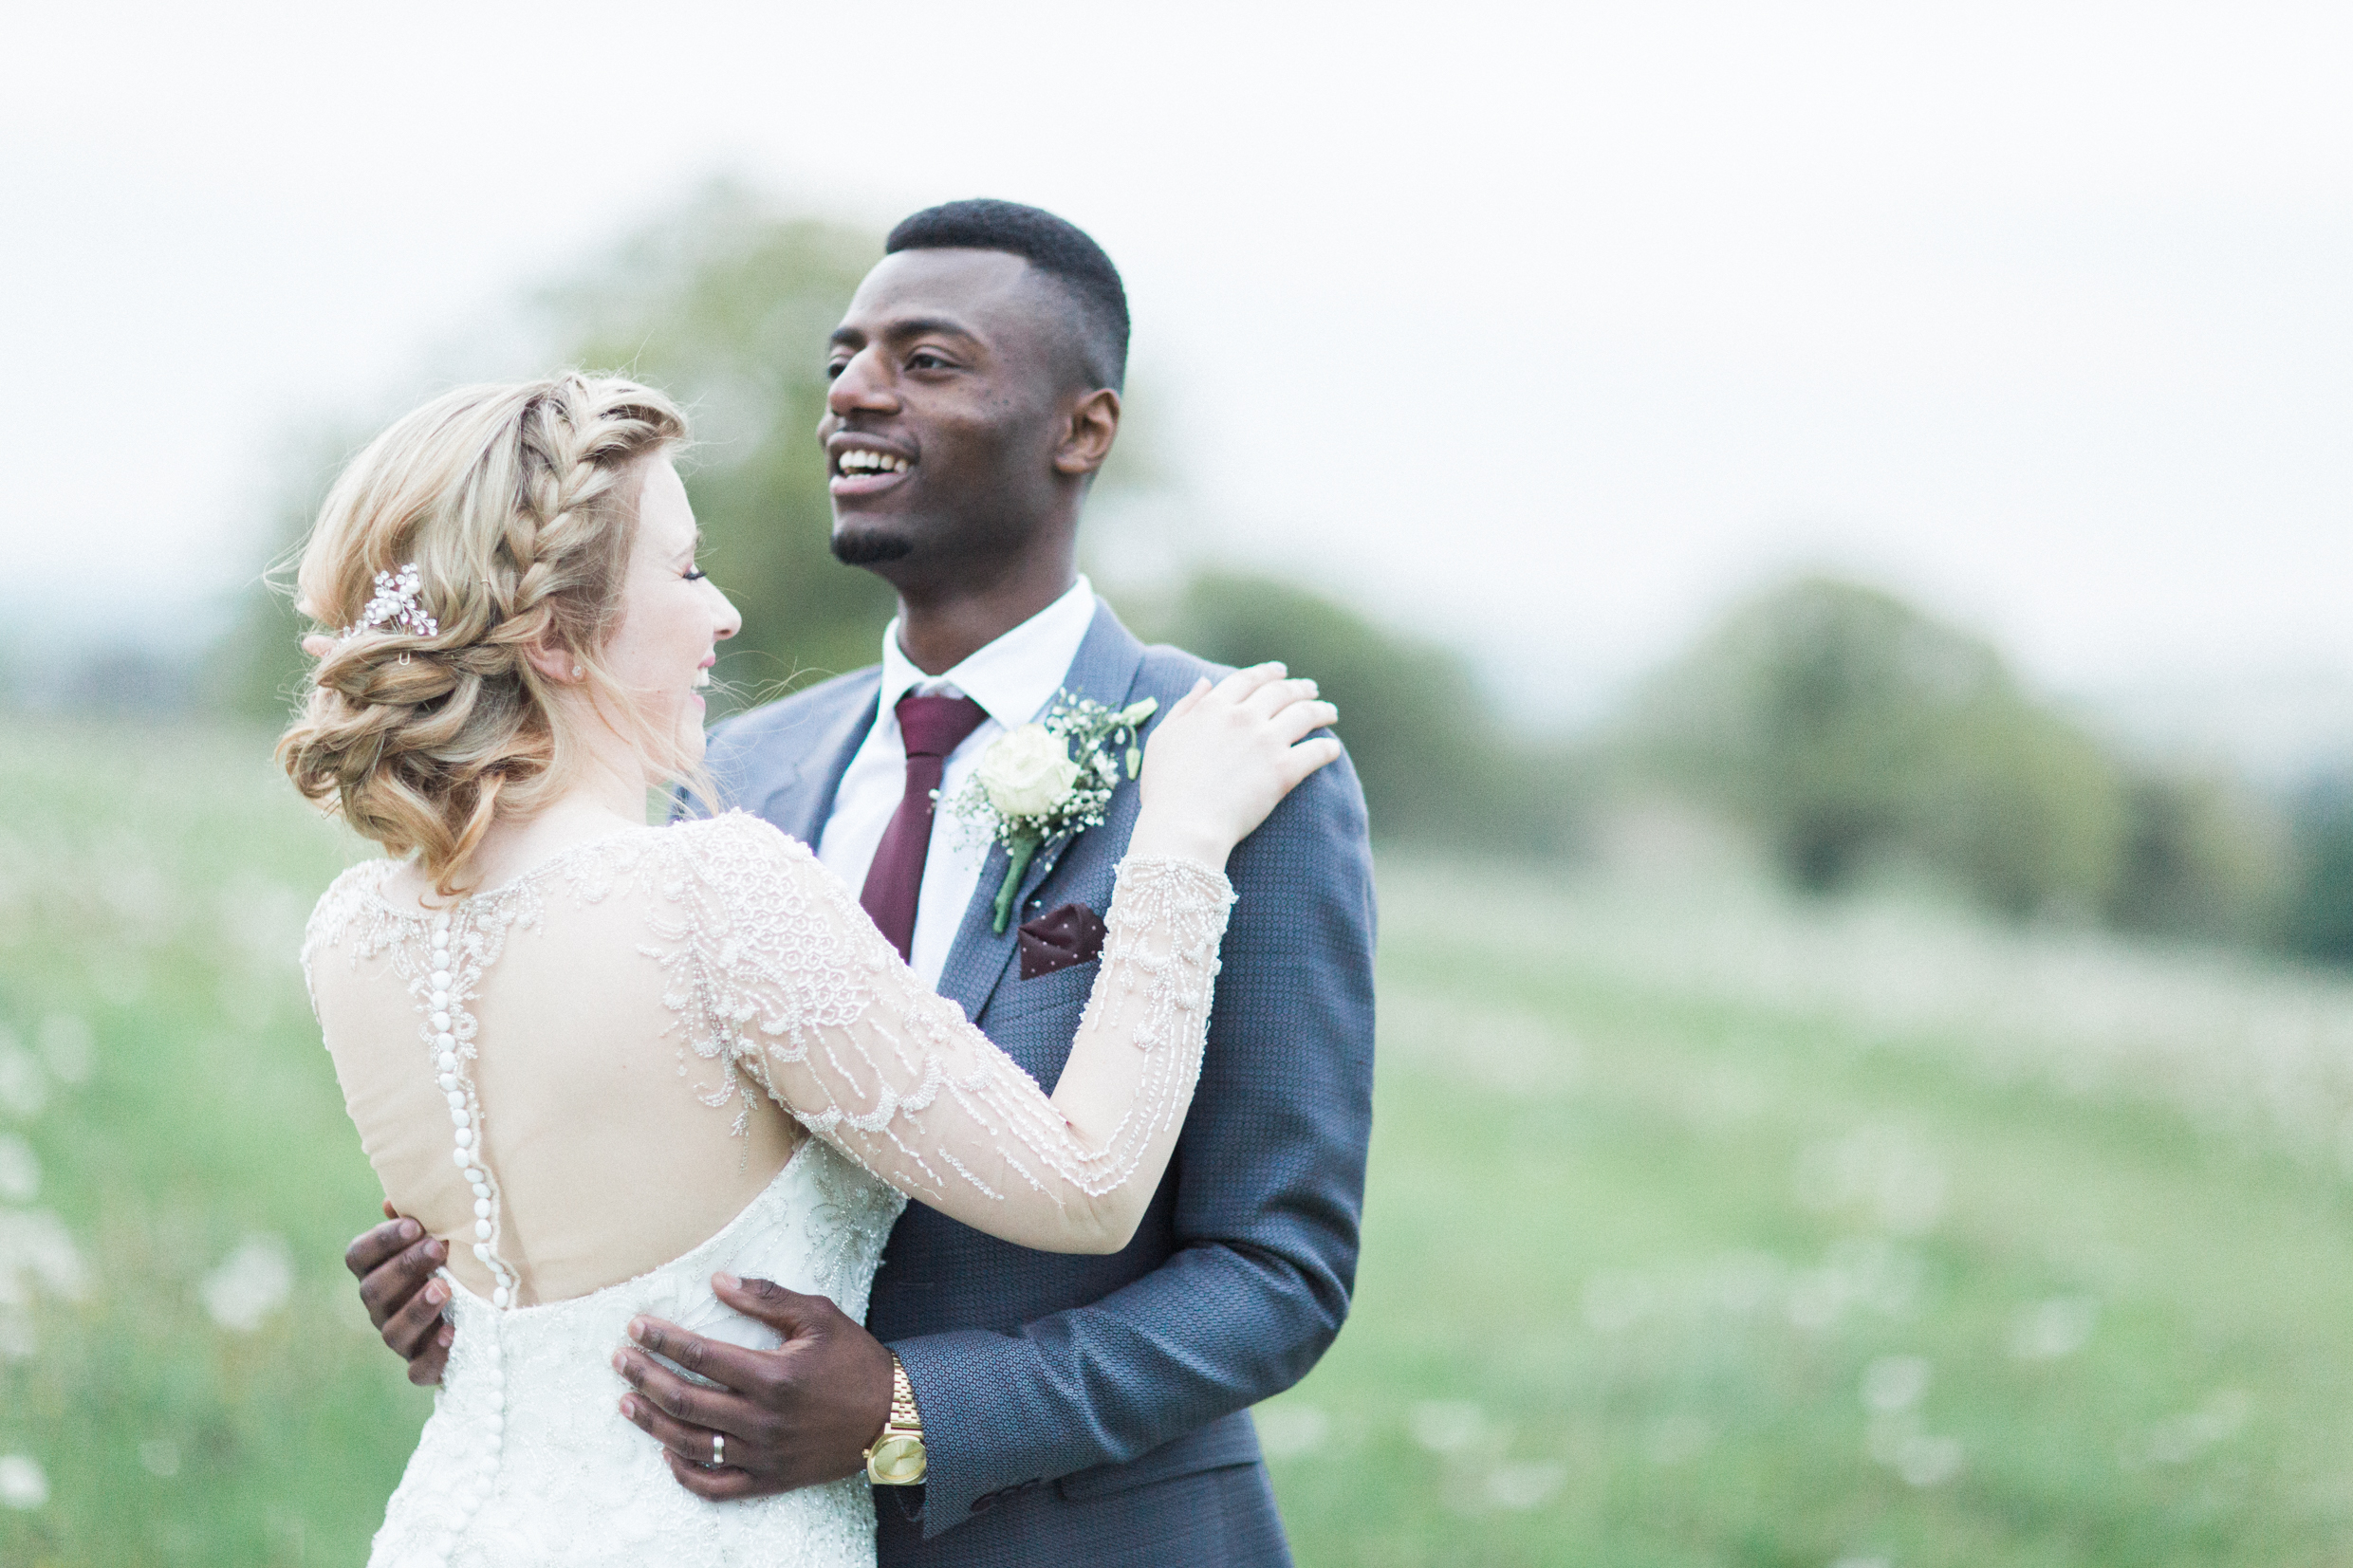 haley & jermaine-46.jpg